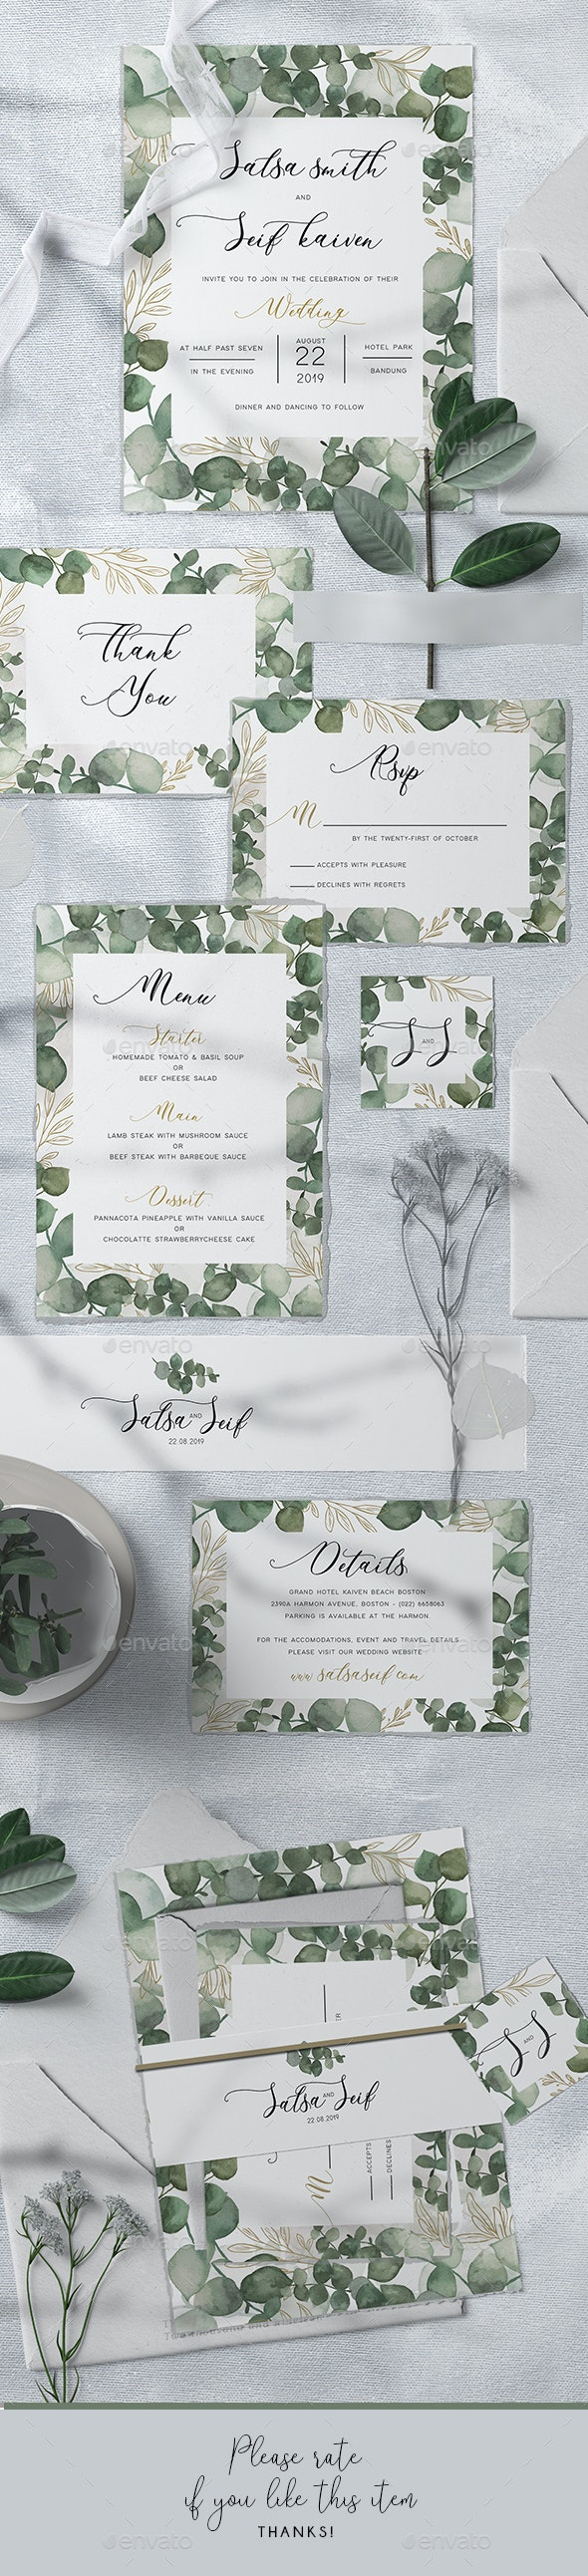 Eucalyptus Wedding Invitation - Weddings Cards & Invites